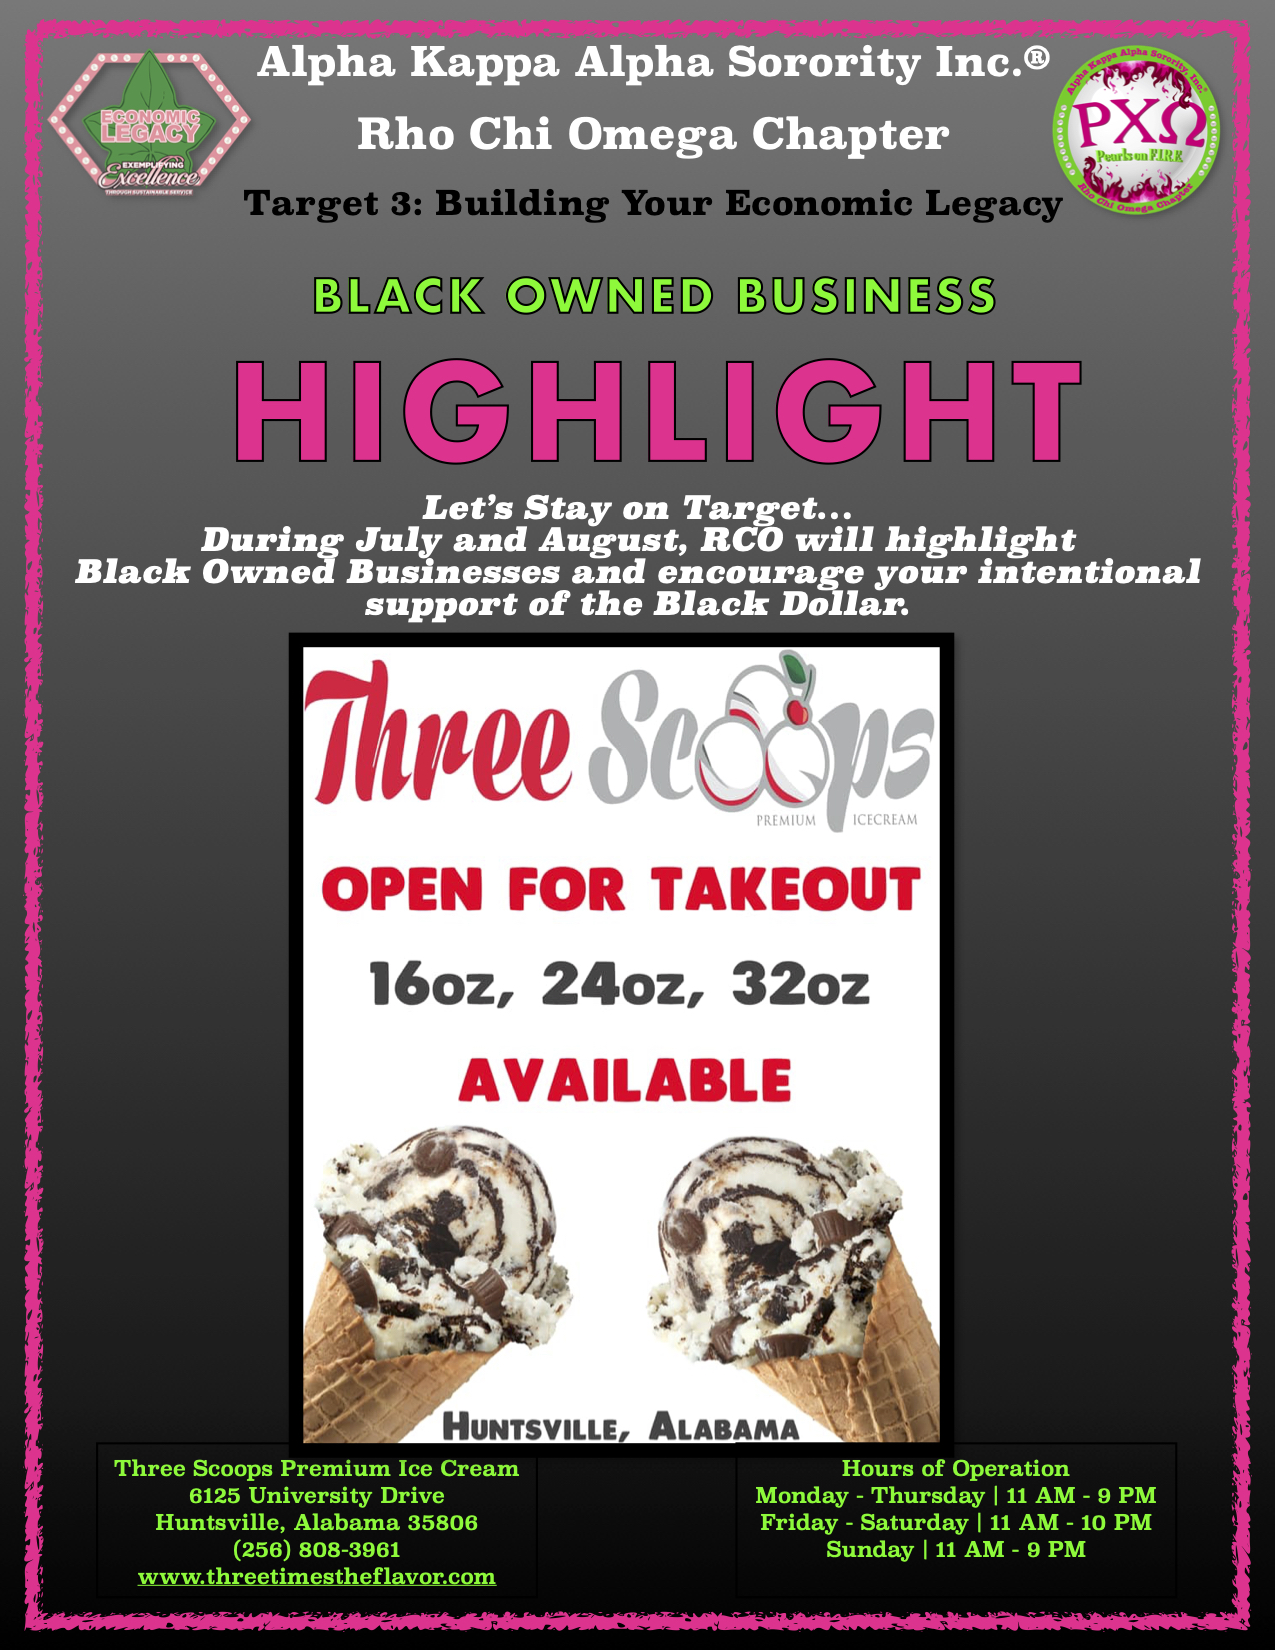 RCO Black Owned Business Highlight - Thr